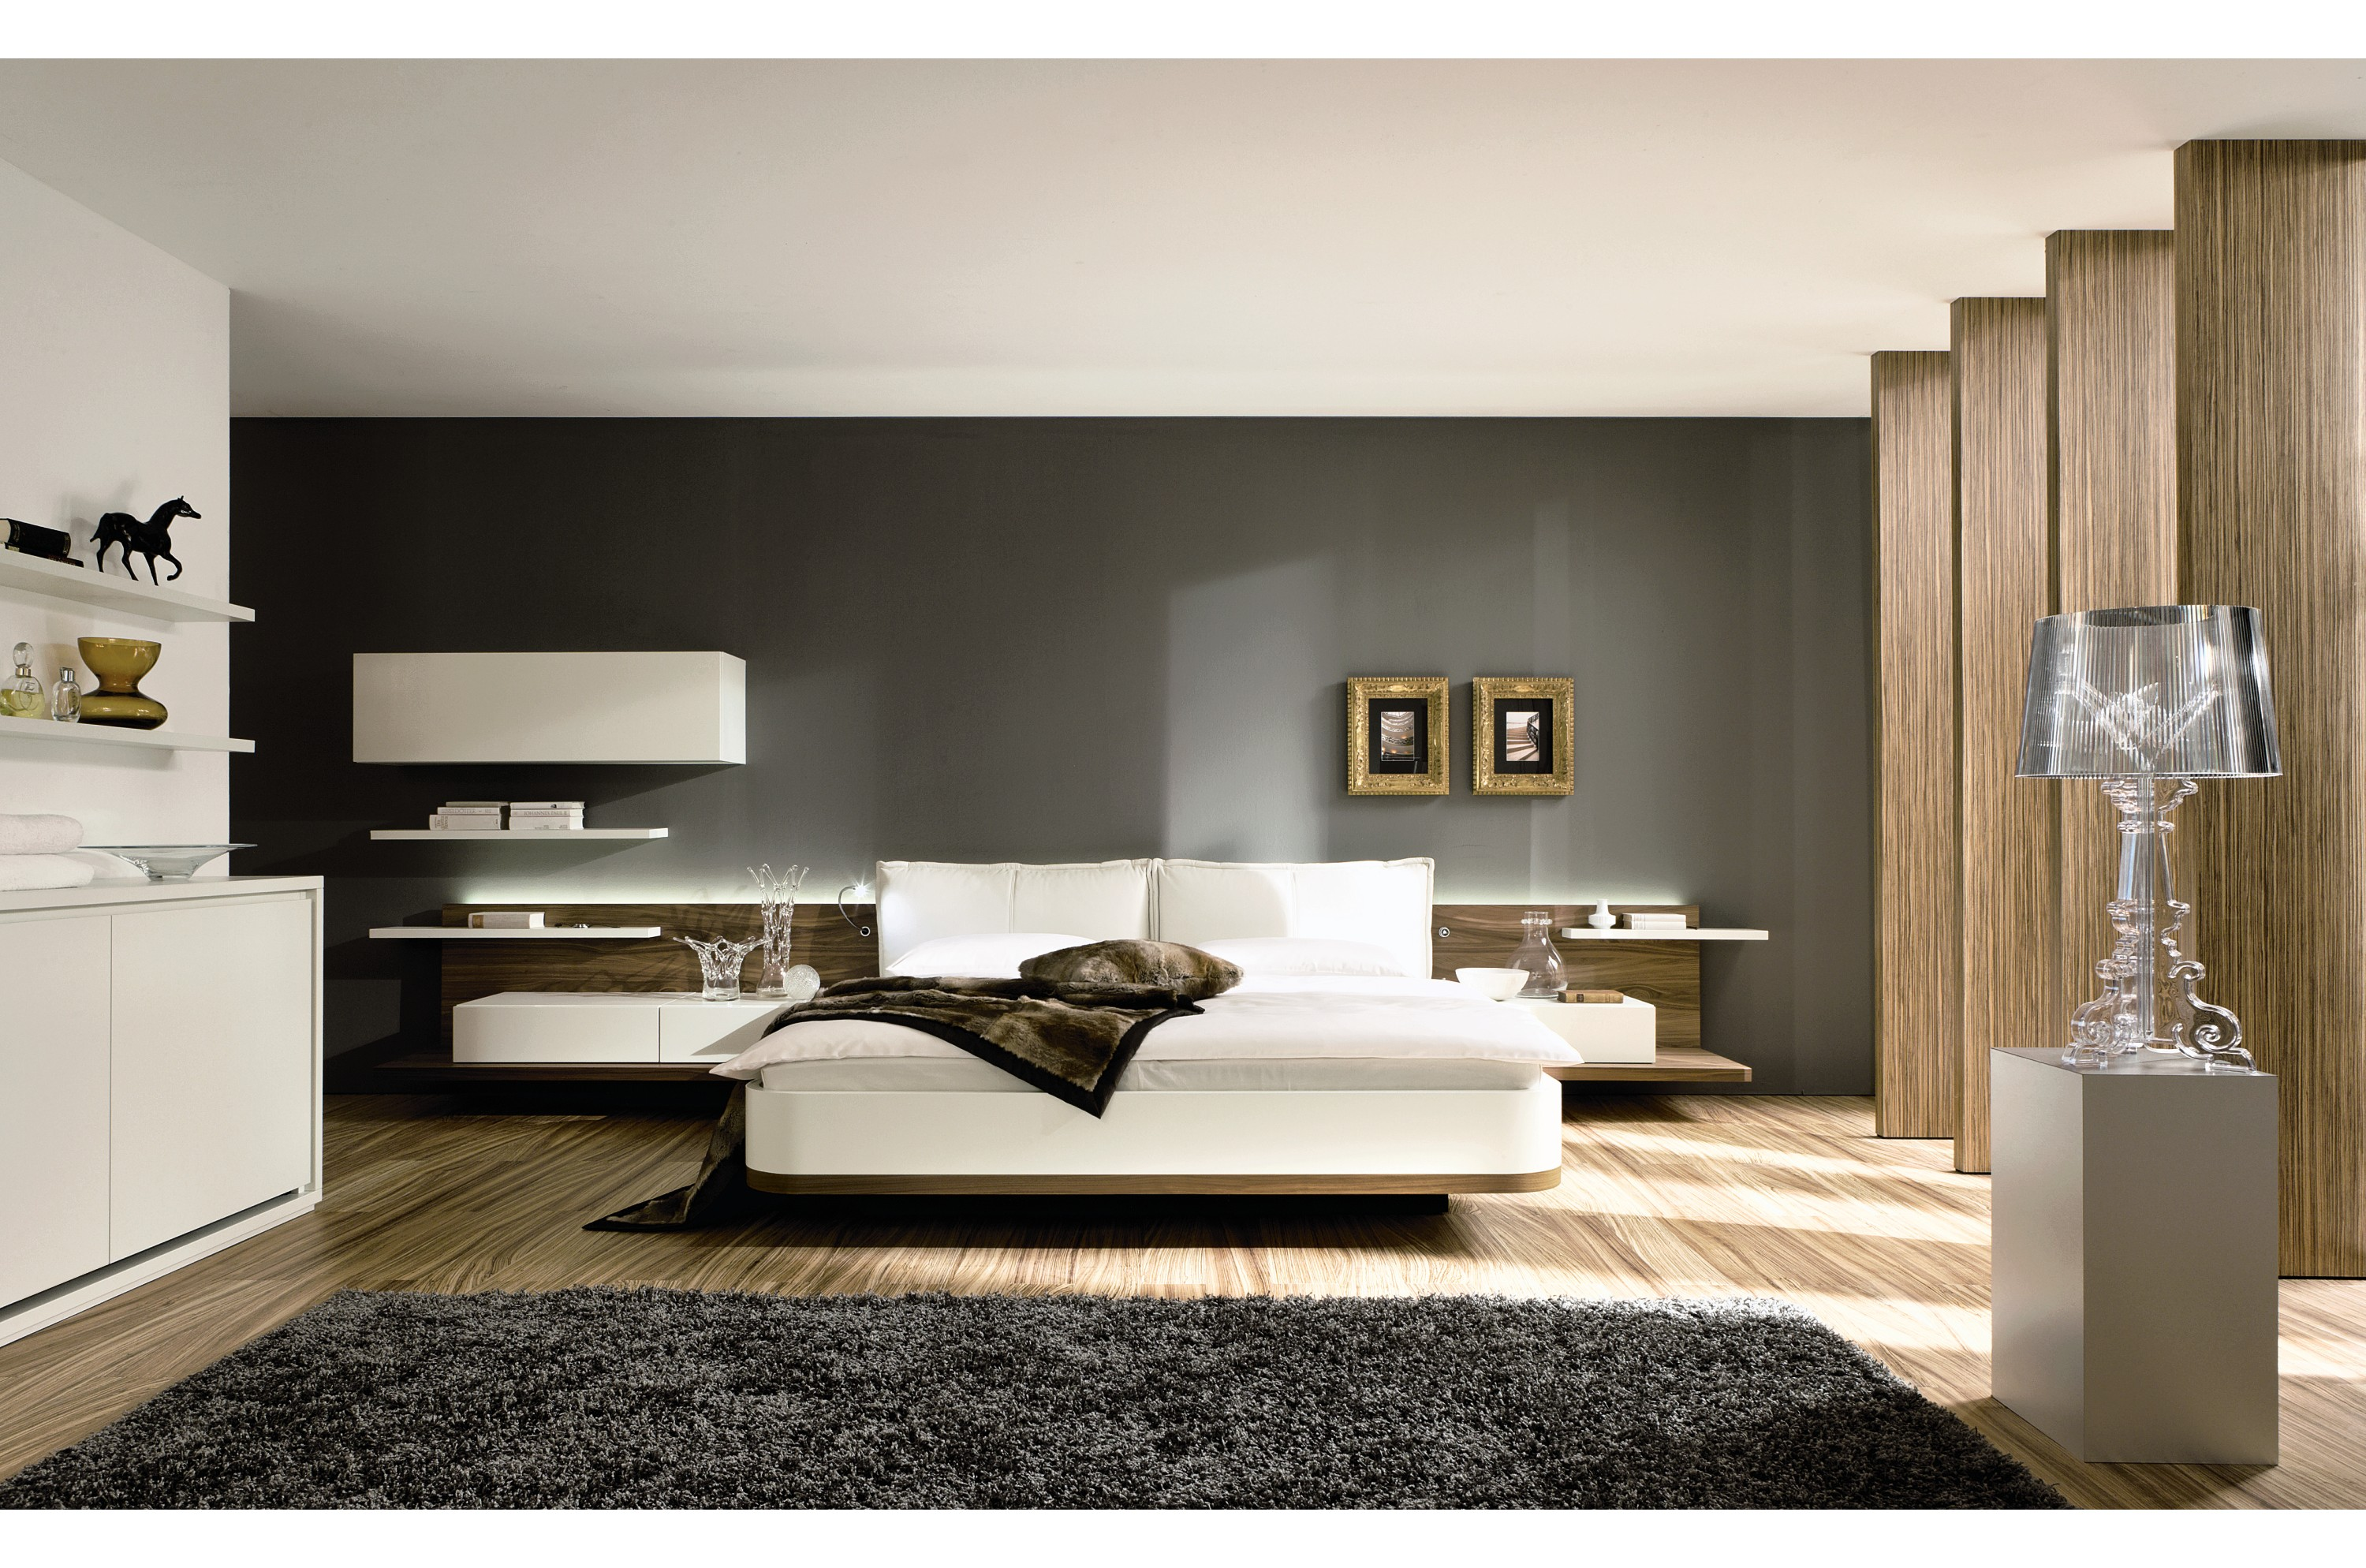 contemporary bedroom styles modern architecture concept. Black Bedroom Furniture Sets. Home Design Ideas